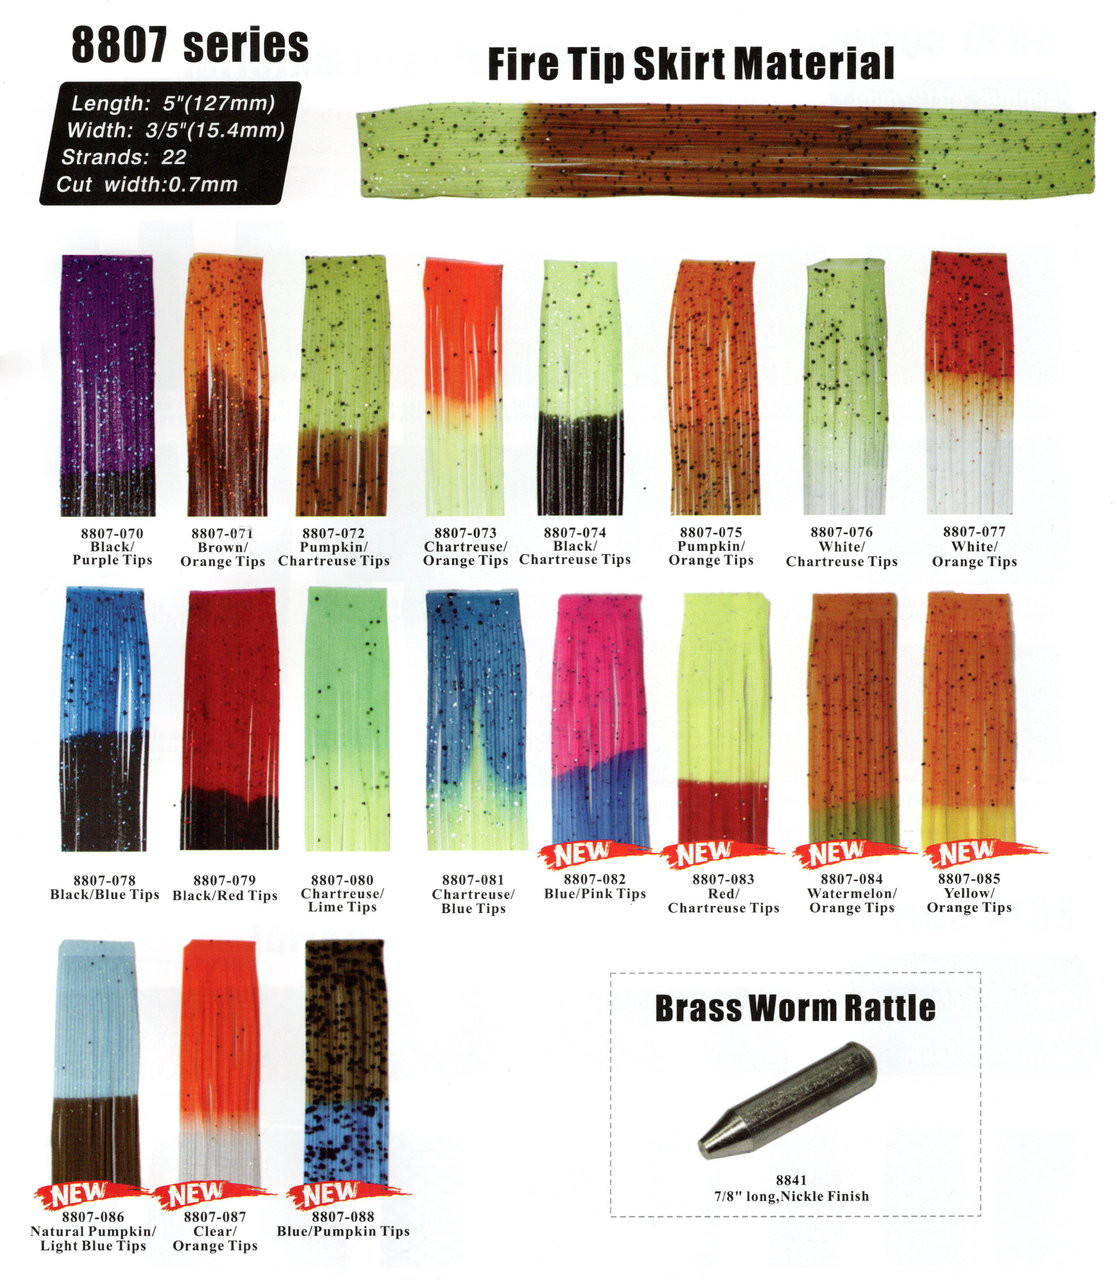 Fire Tip Silicon Skirts material (8807 100pc)